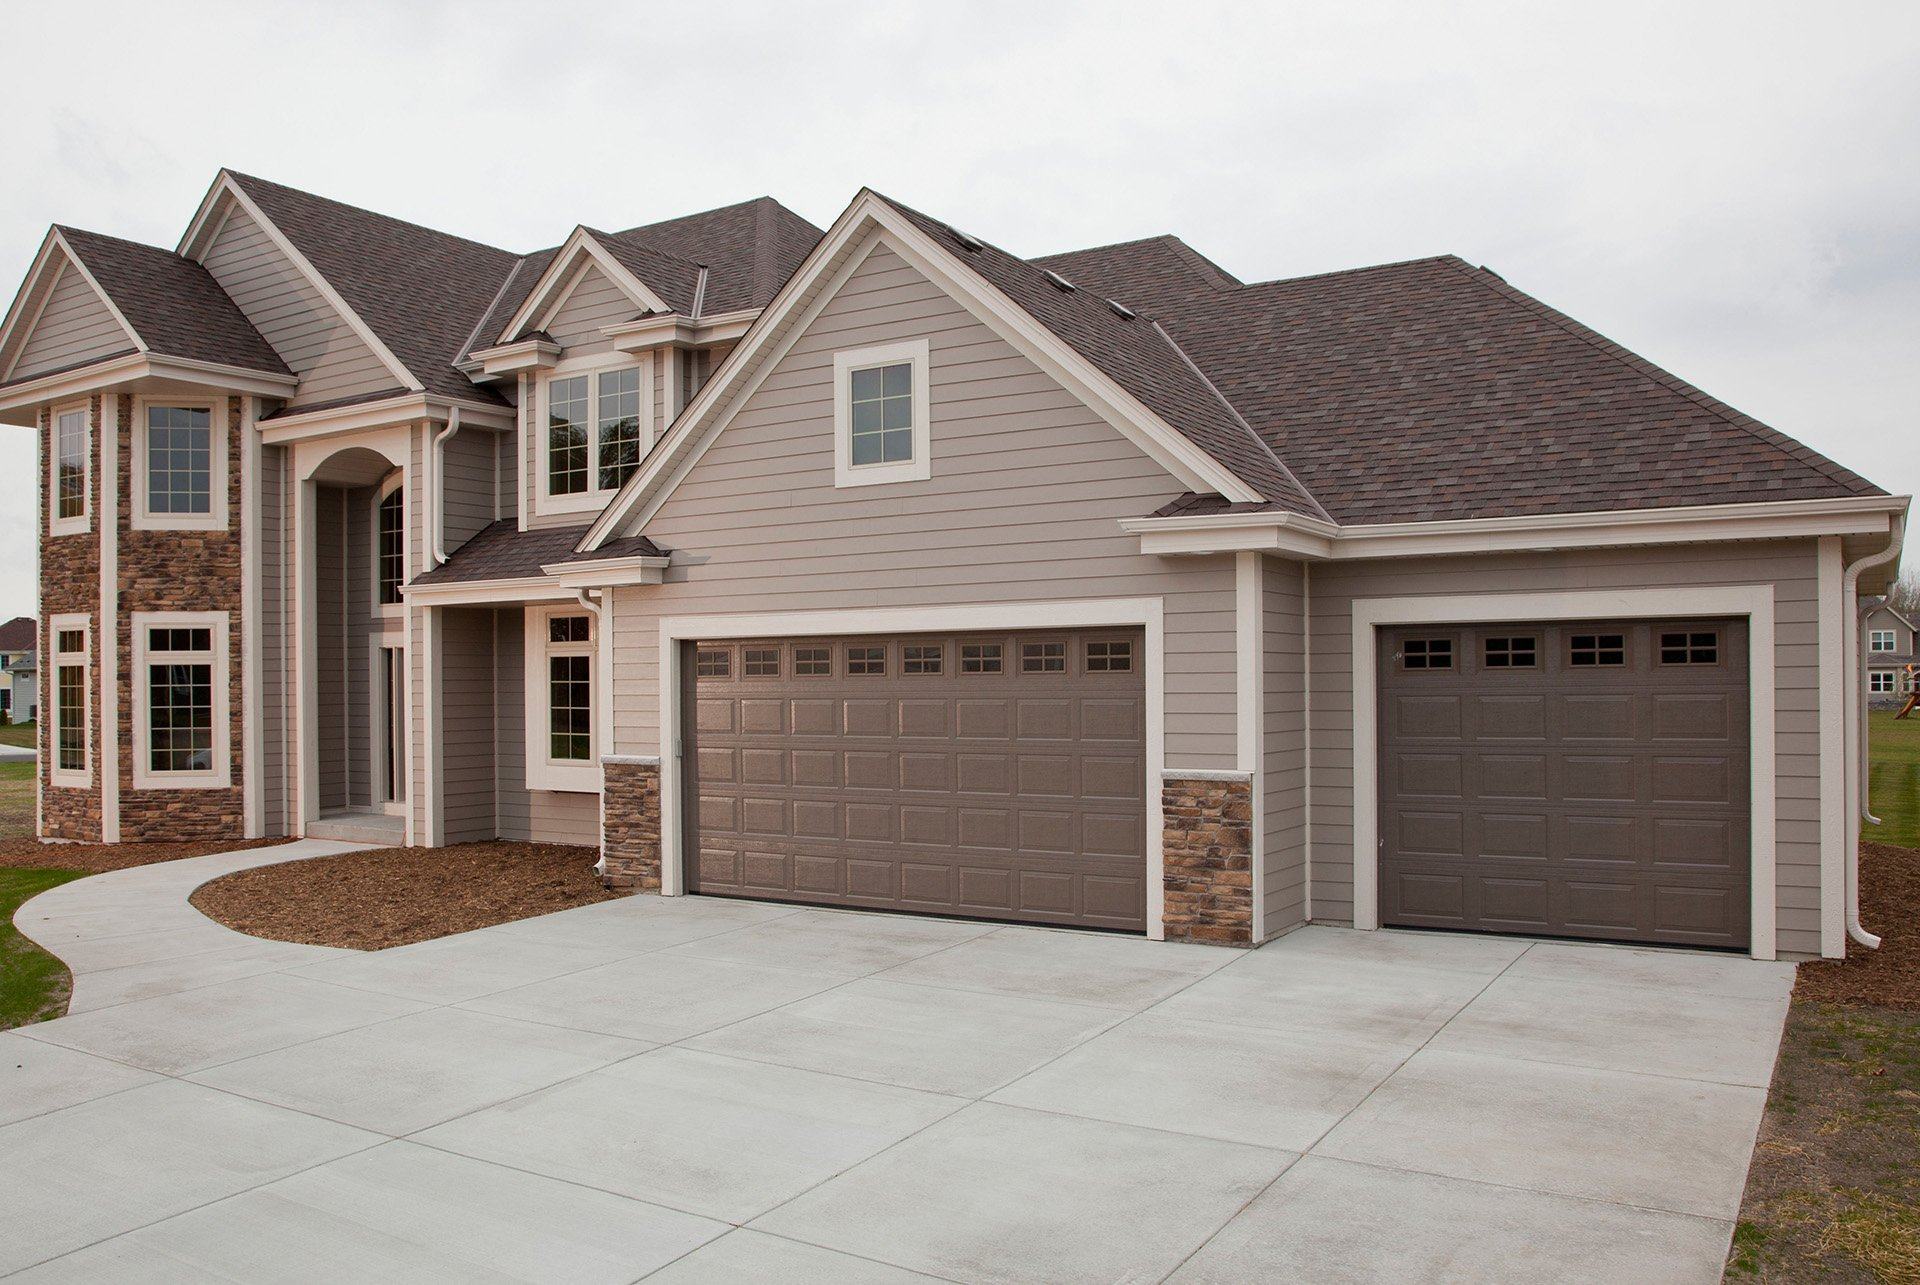 Garage Door Repair Lexington Ky Replacement Garage Doors For Residential And Commercial Use